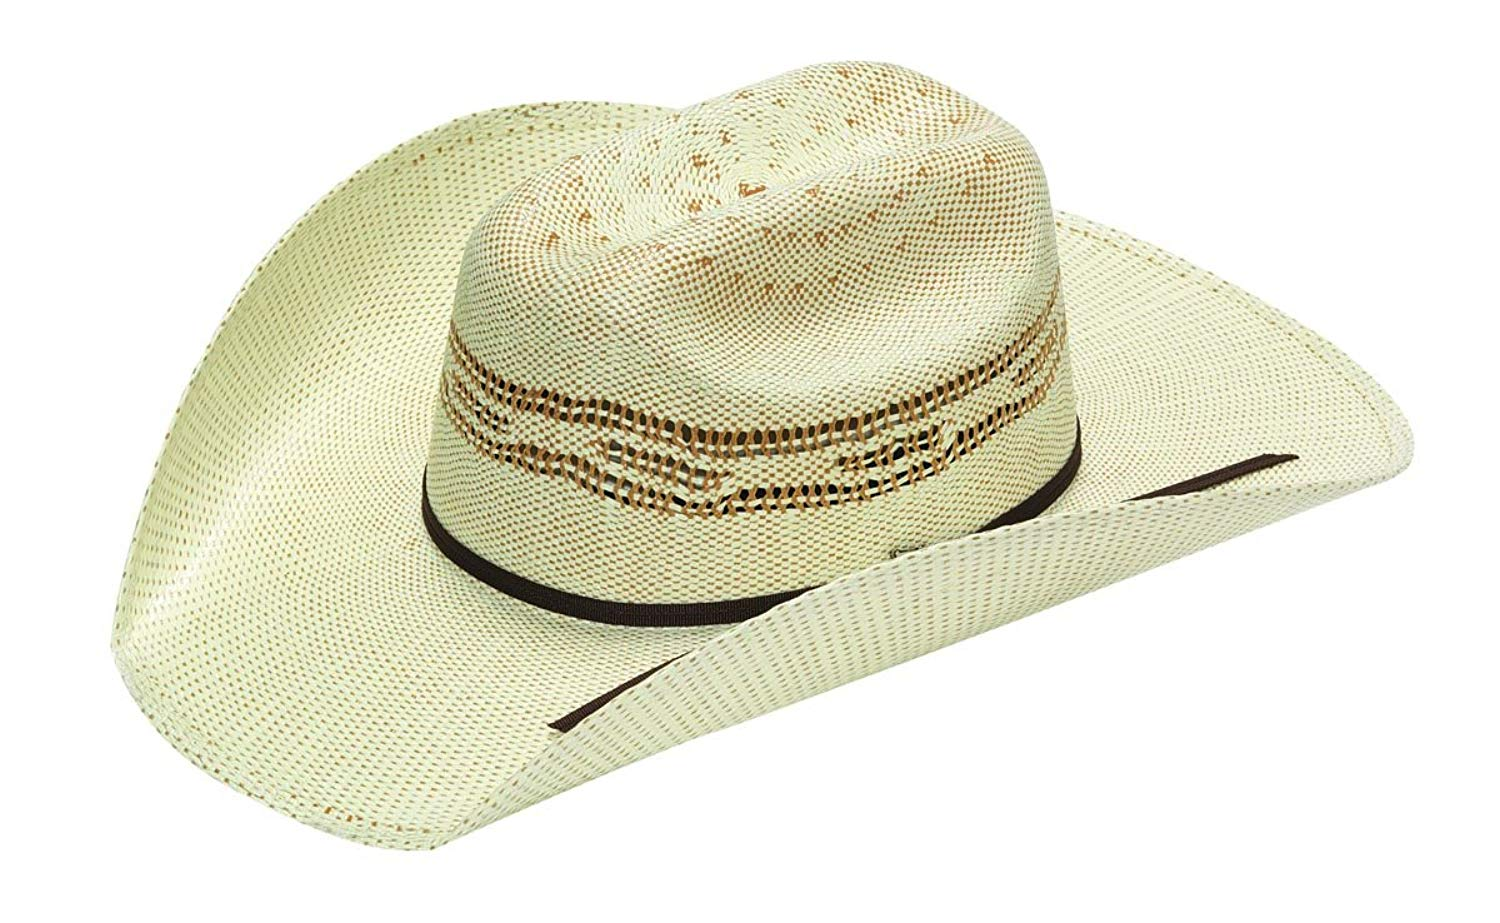 ca74c22ce27 Get Quotations · Twister Western Cowboy Hat Boys Cattleman Bangora Straw  Natural T71630